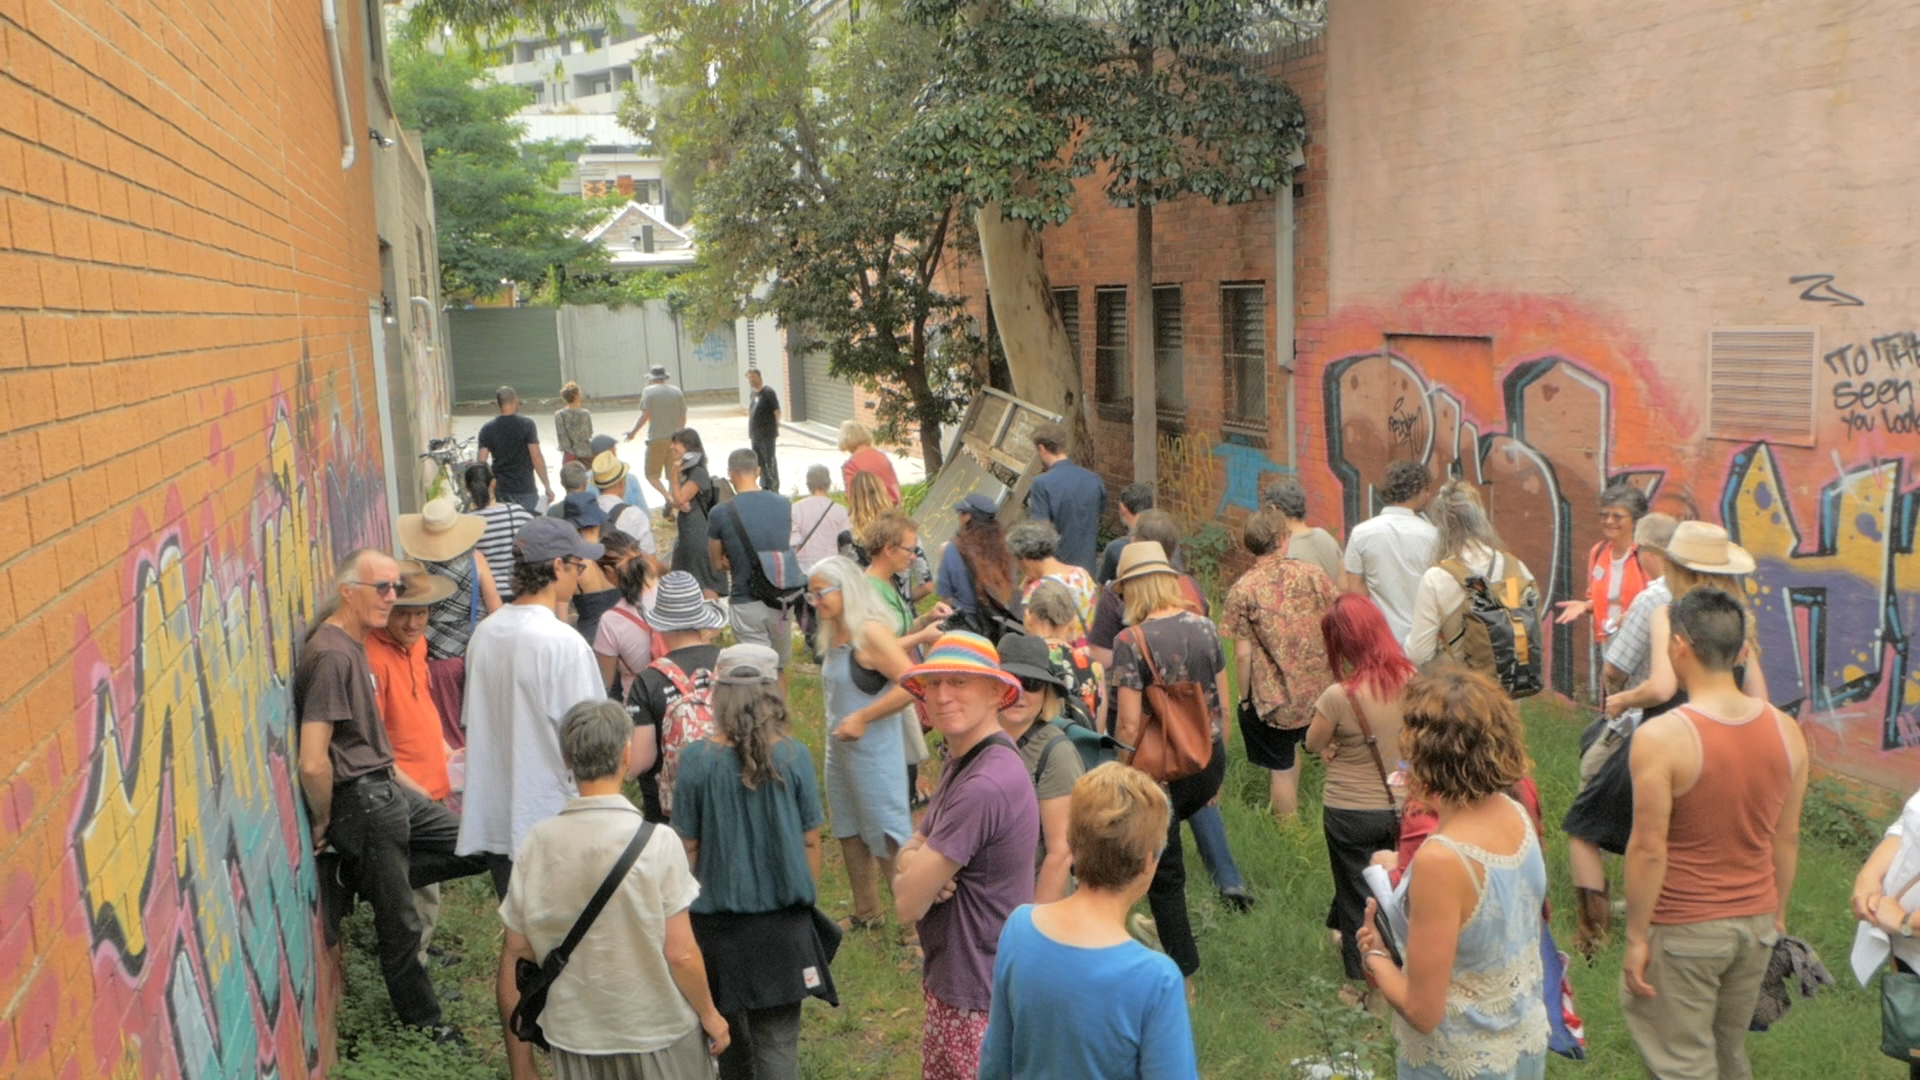 Members of Urban Coup tour the site of their planned co-housing project in Melbourne, Australia.